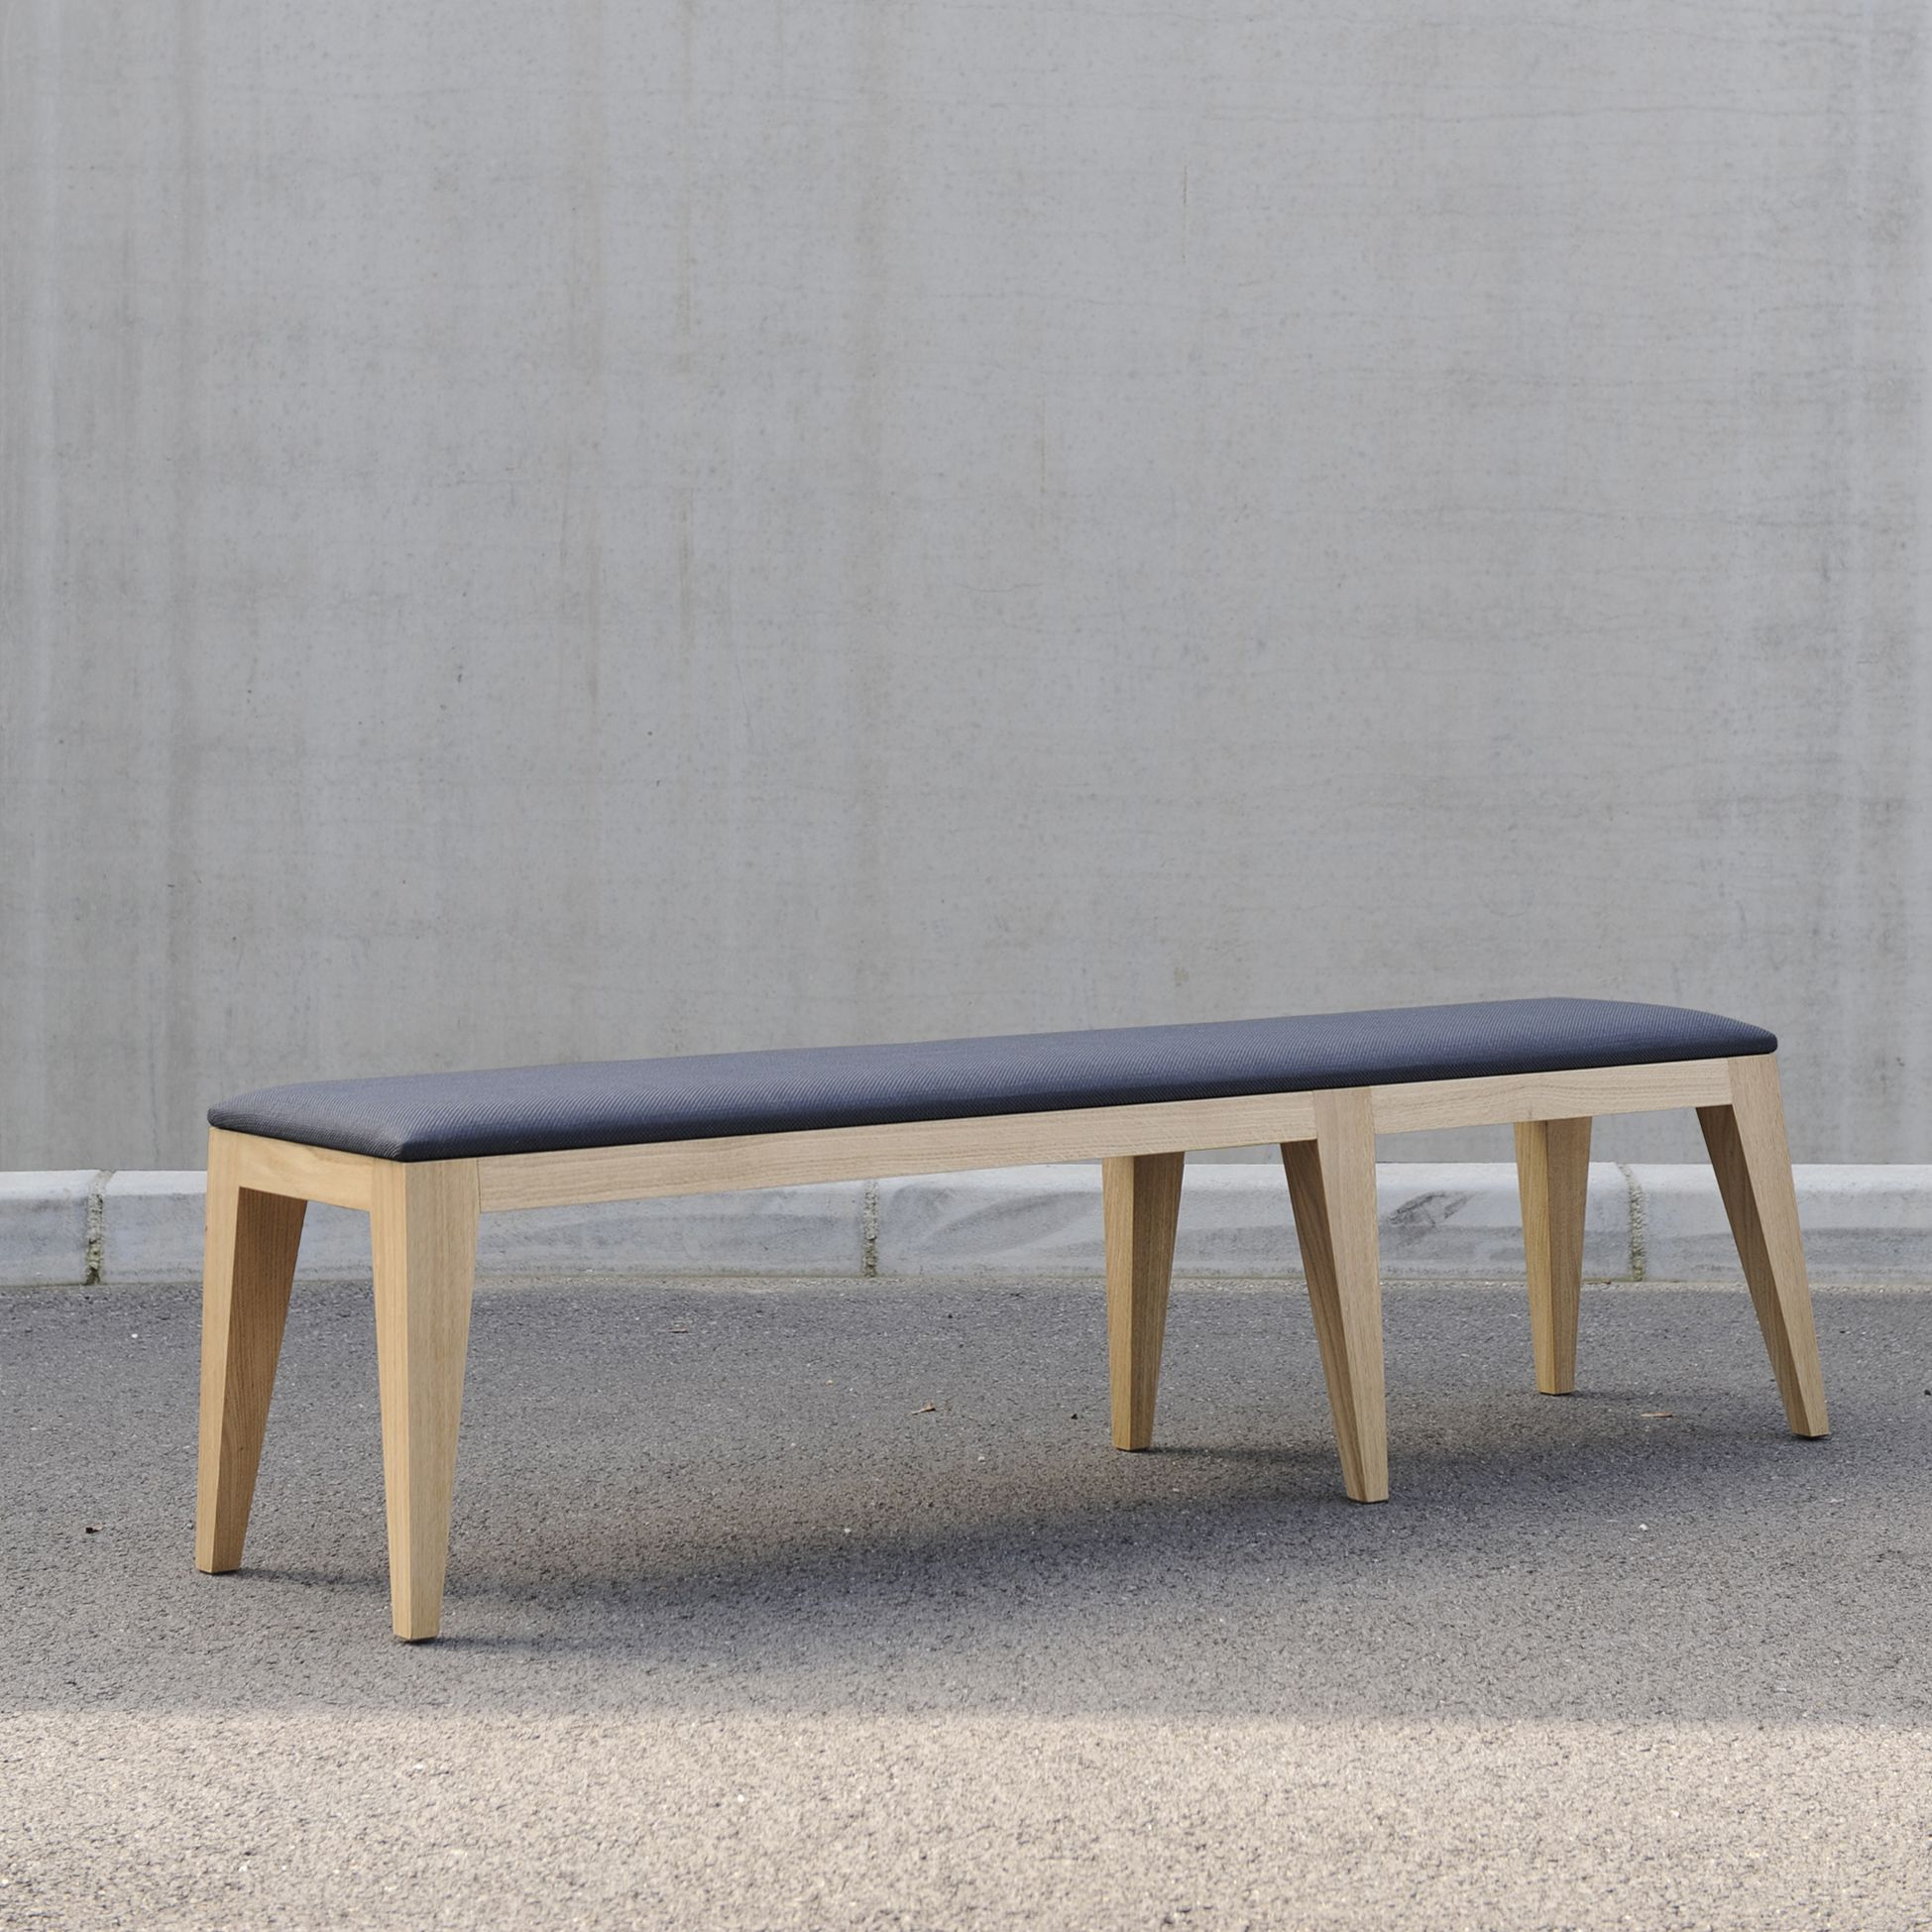 Grand Banc om4.2 contemporain design. Frêne massif naturel mat ...